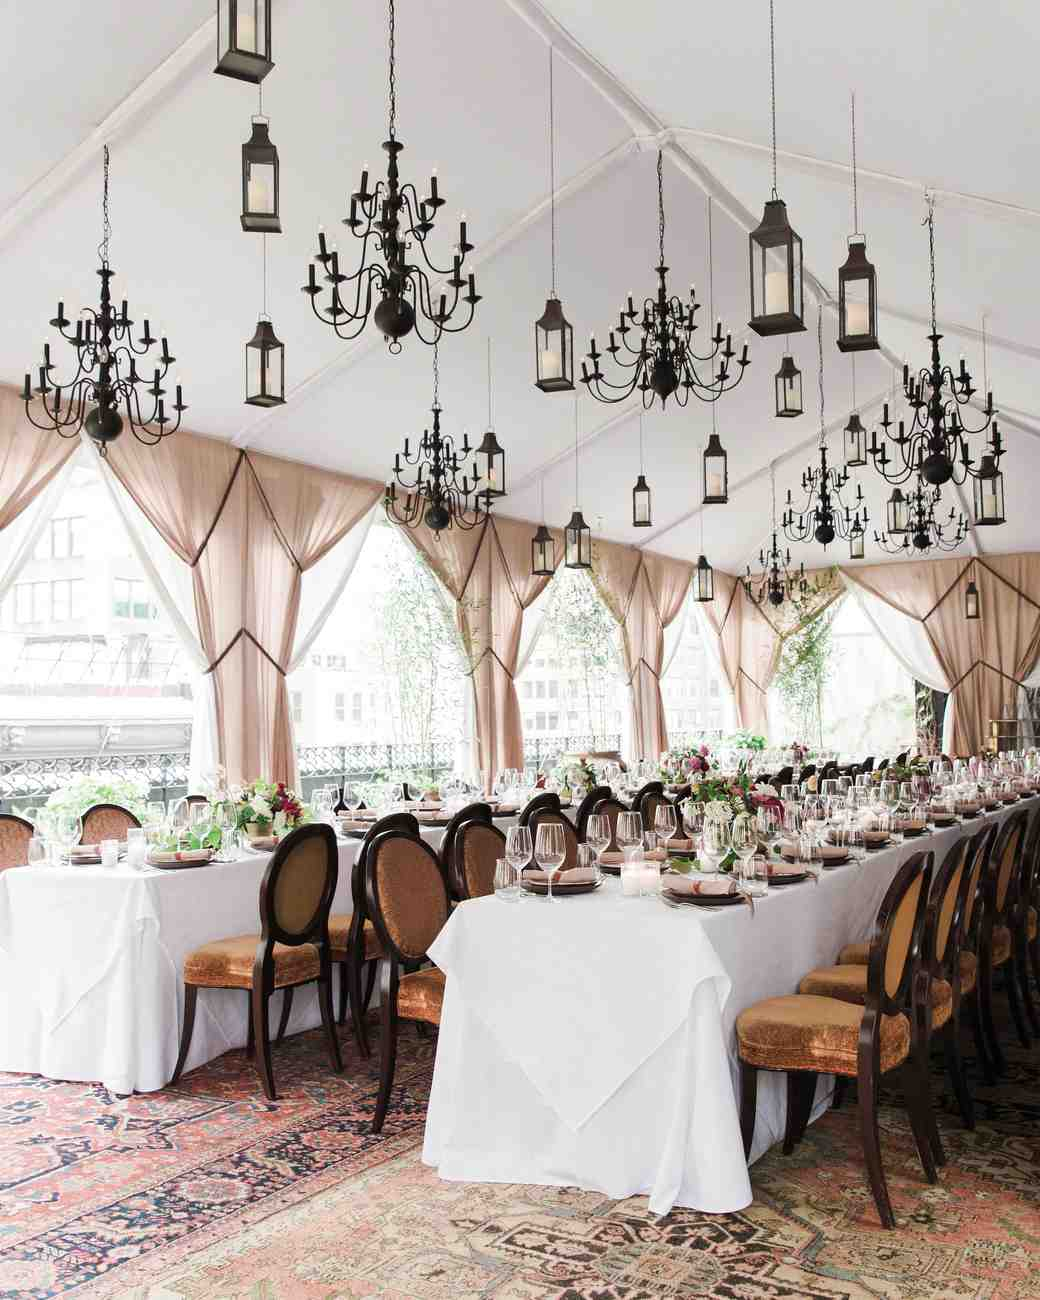 randy-mayo-real-wedding-reception-tables-tent.jpg